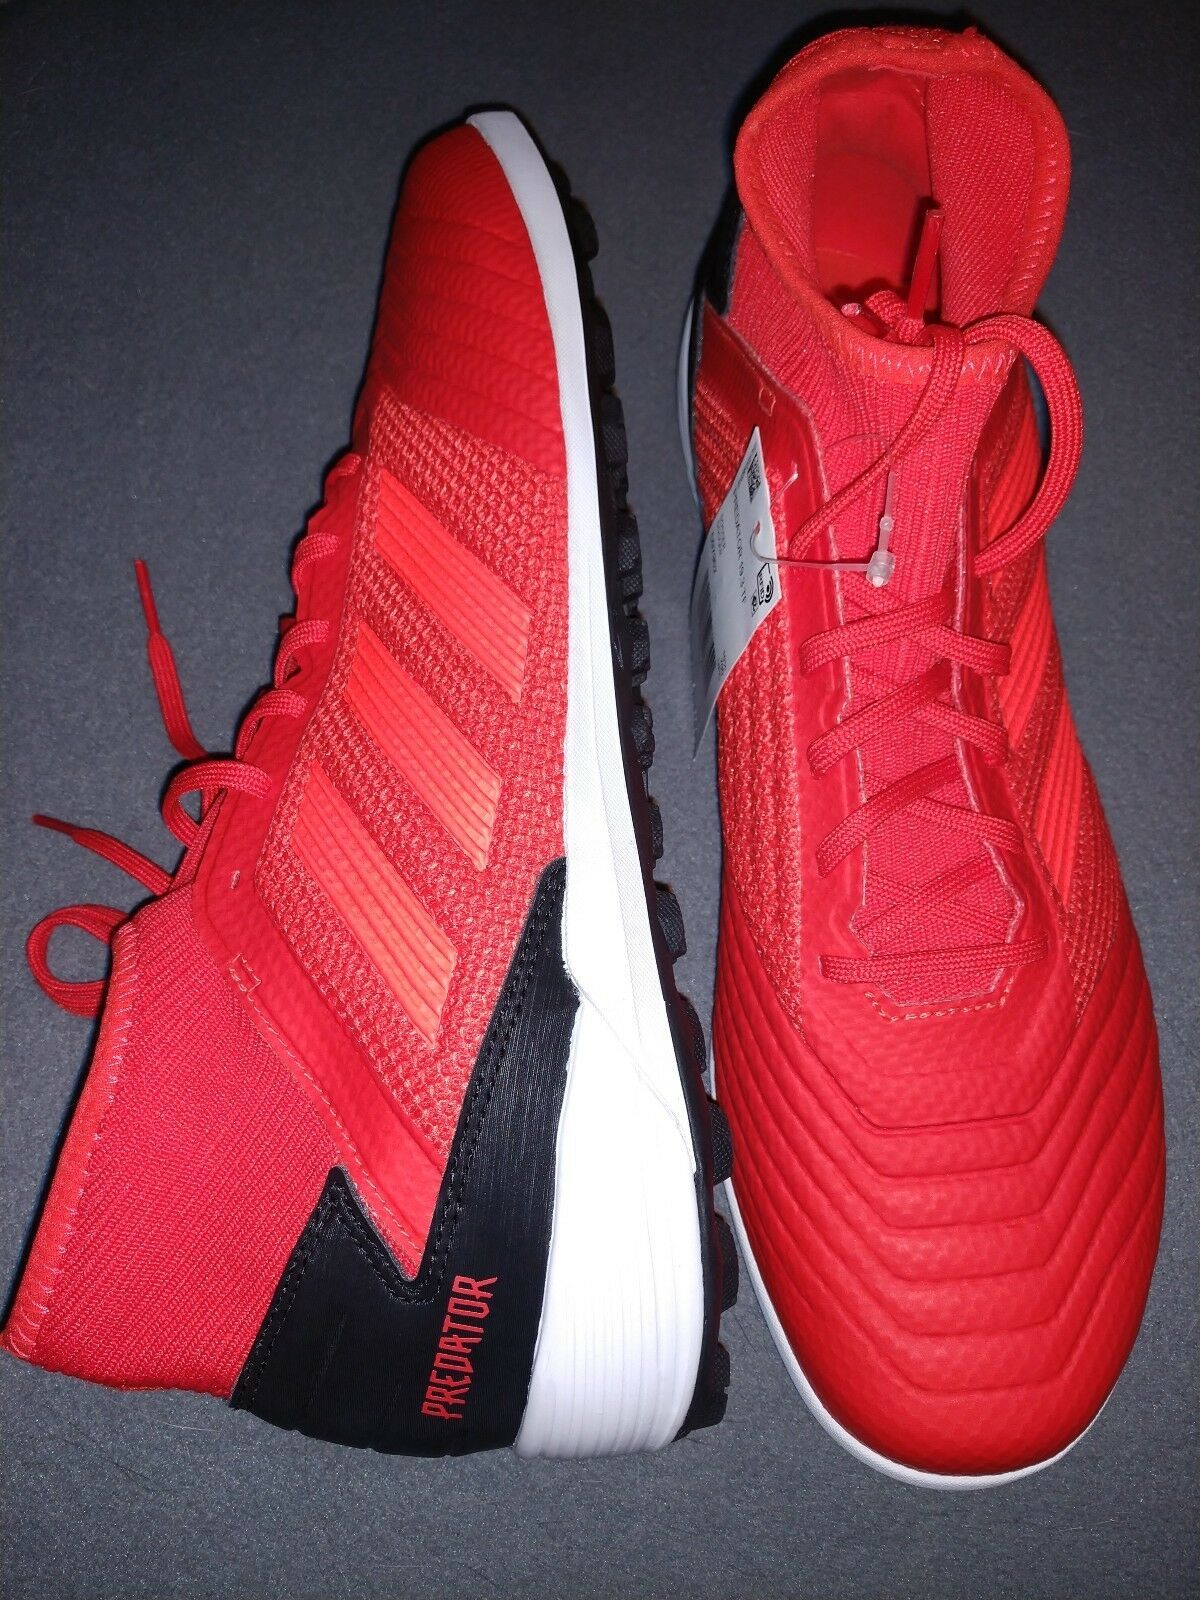 Adidas  PREDATOR TANGO 19.3 TURF shoes Active Red Black White D97962 Men's Sz 11